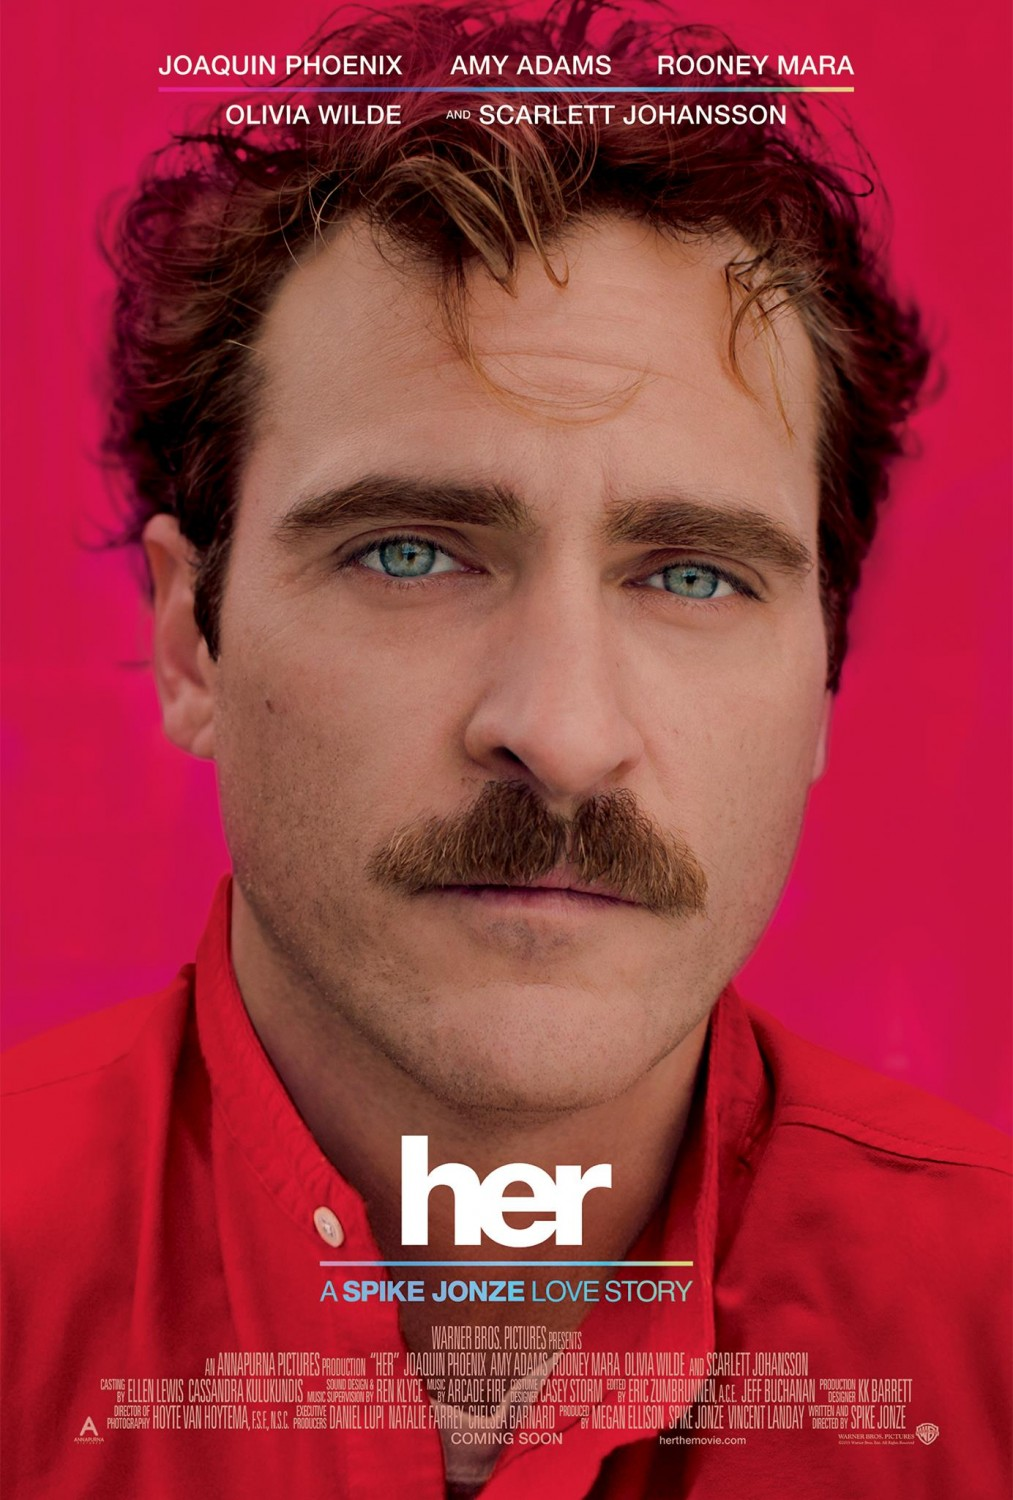 Image result for her movie poster joaquin phoenix""